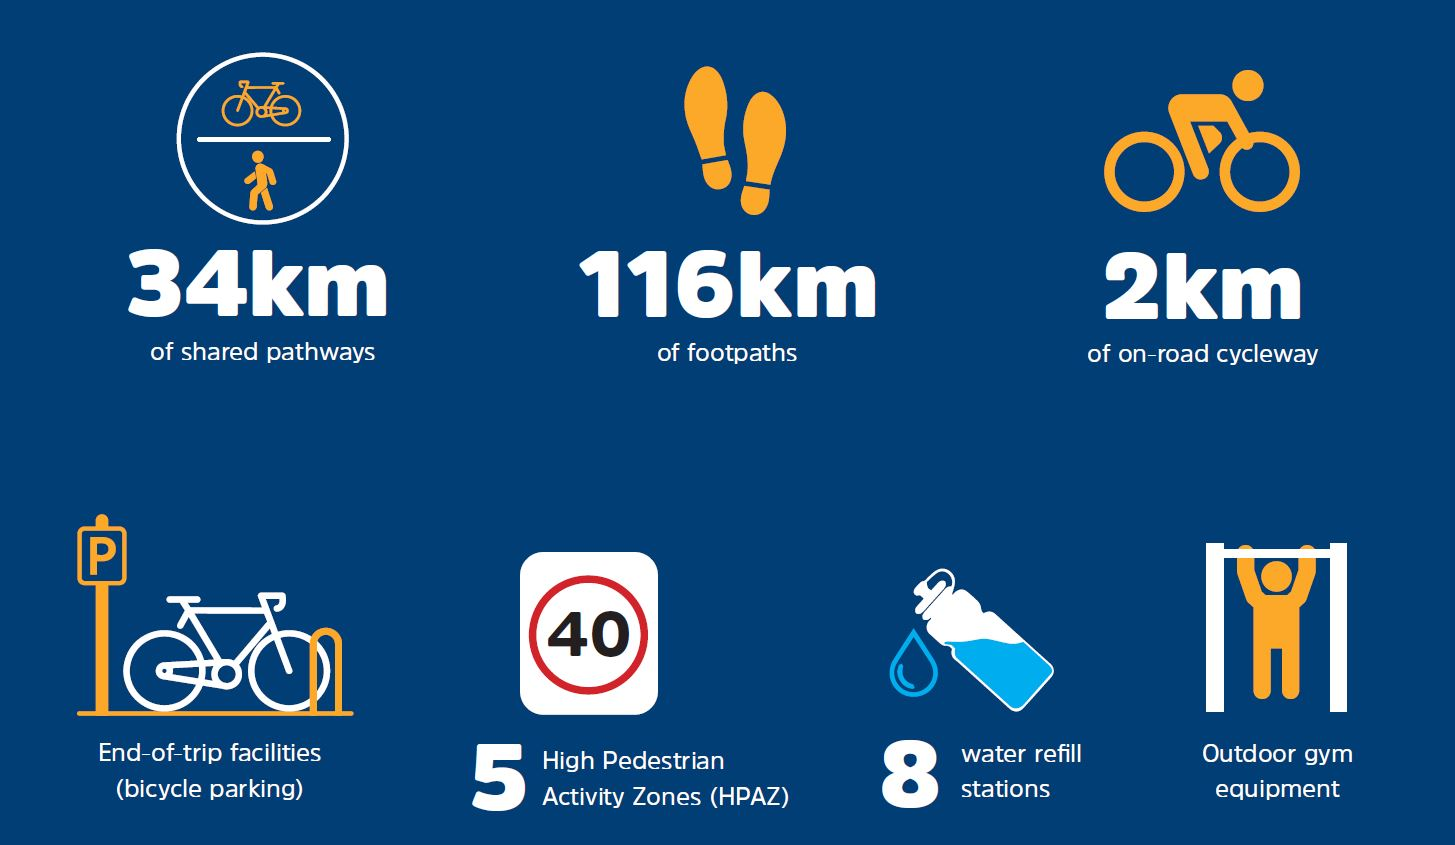 Our regions active transport network consists of: